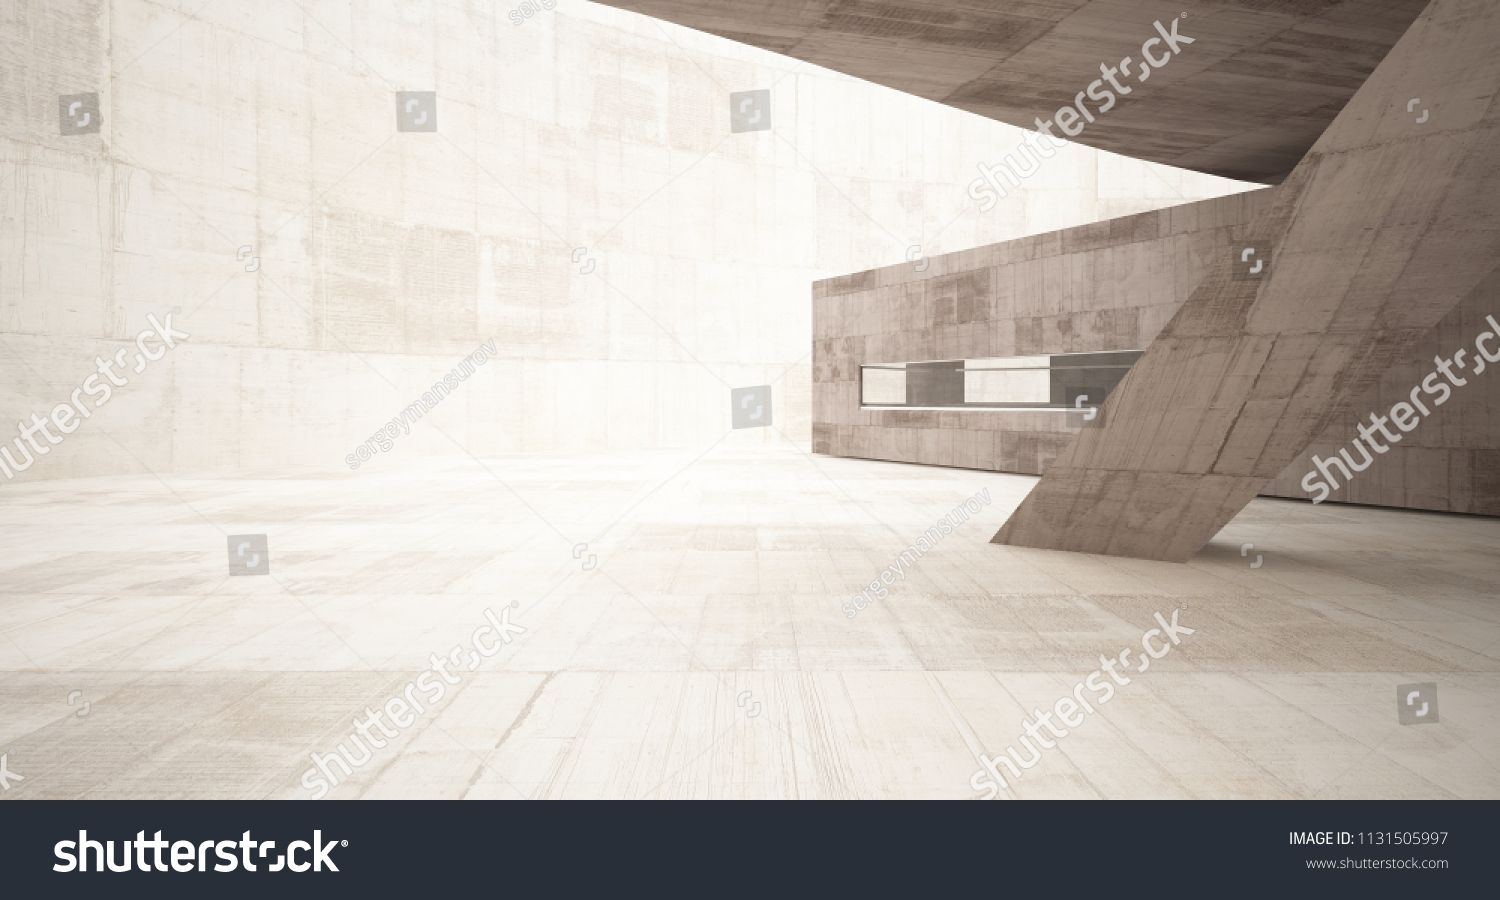 Abstract White And Concrete Interior With Glossy White Lines 3d Illustration And Rendering Concrete Interior Abstrac Concrete Interiors Glossy White Interior